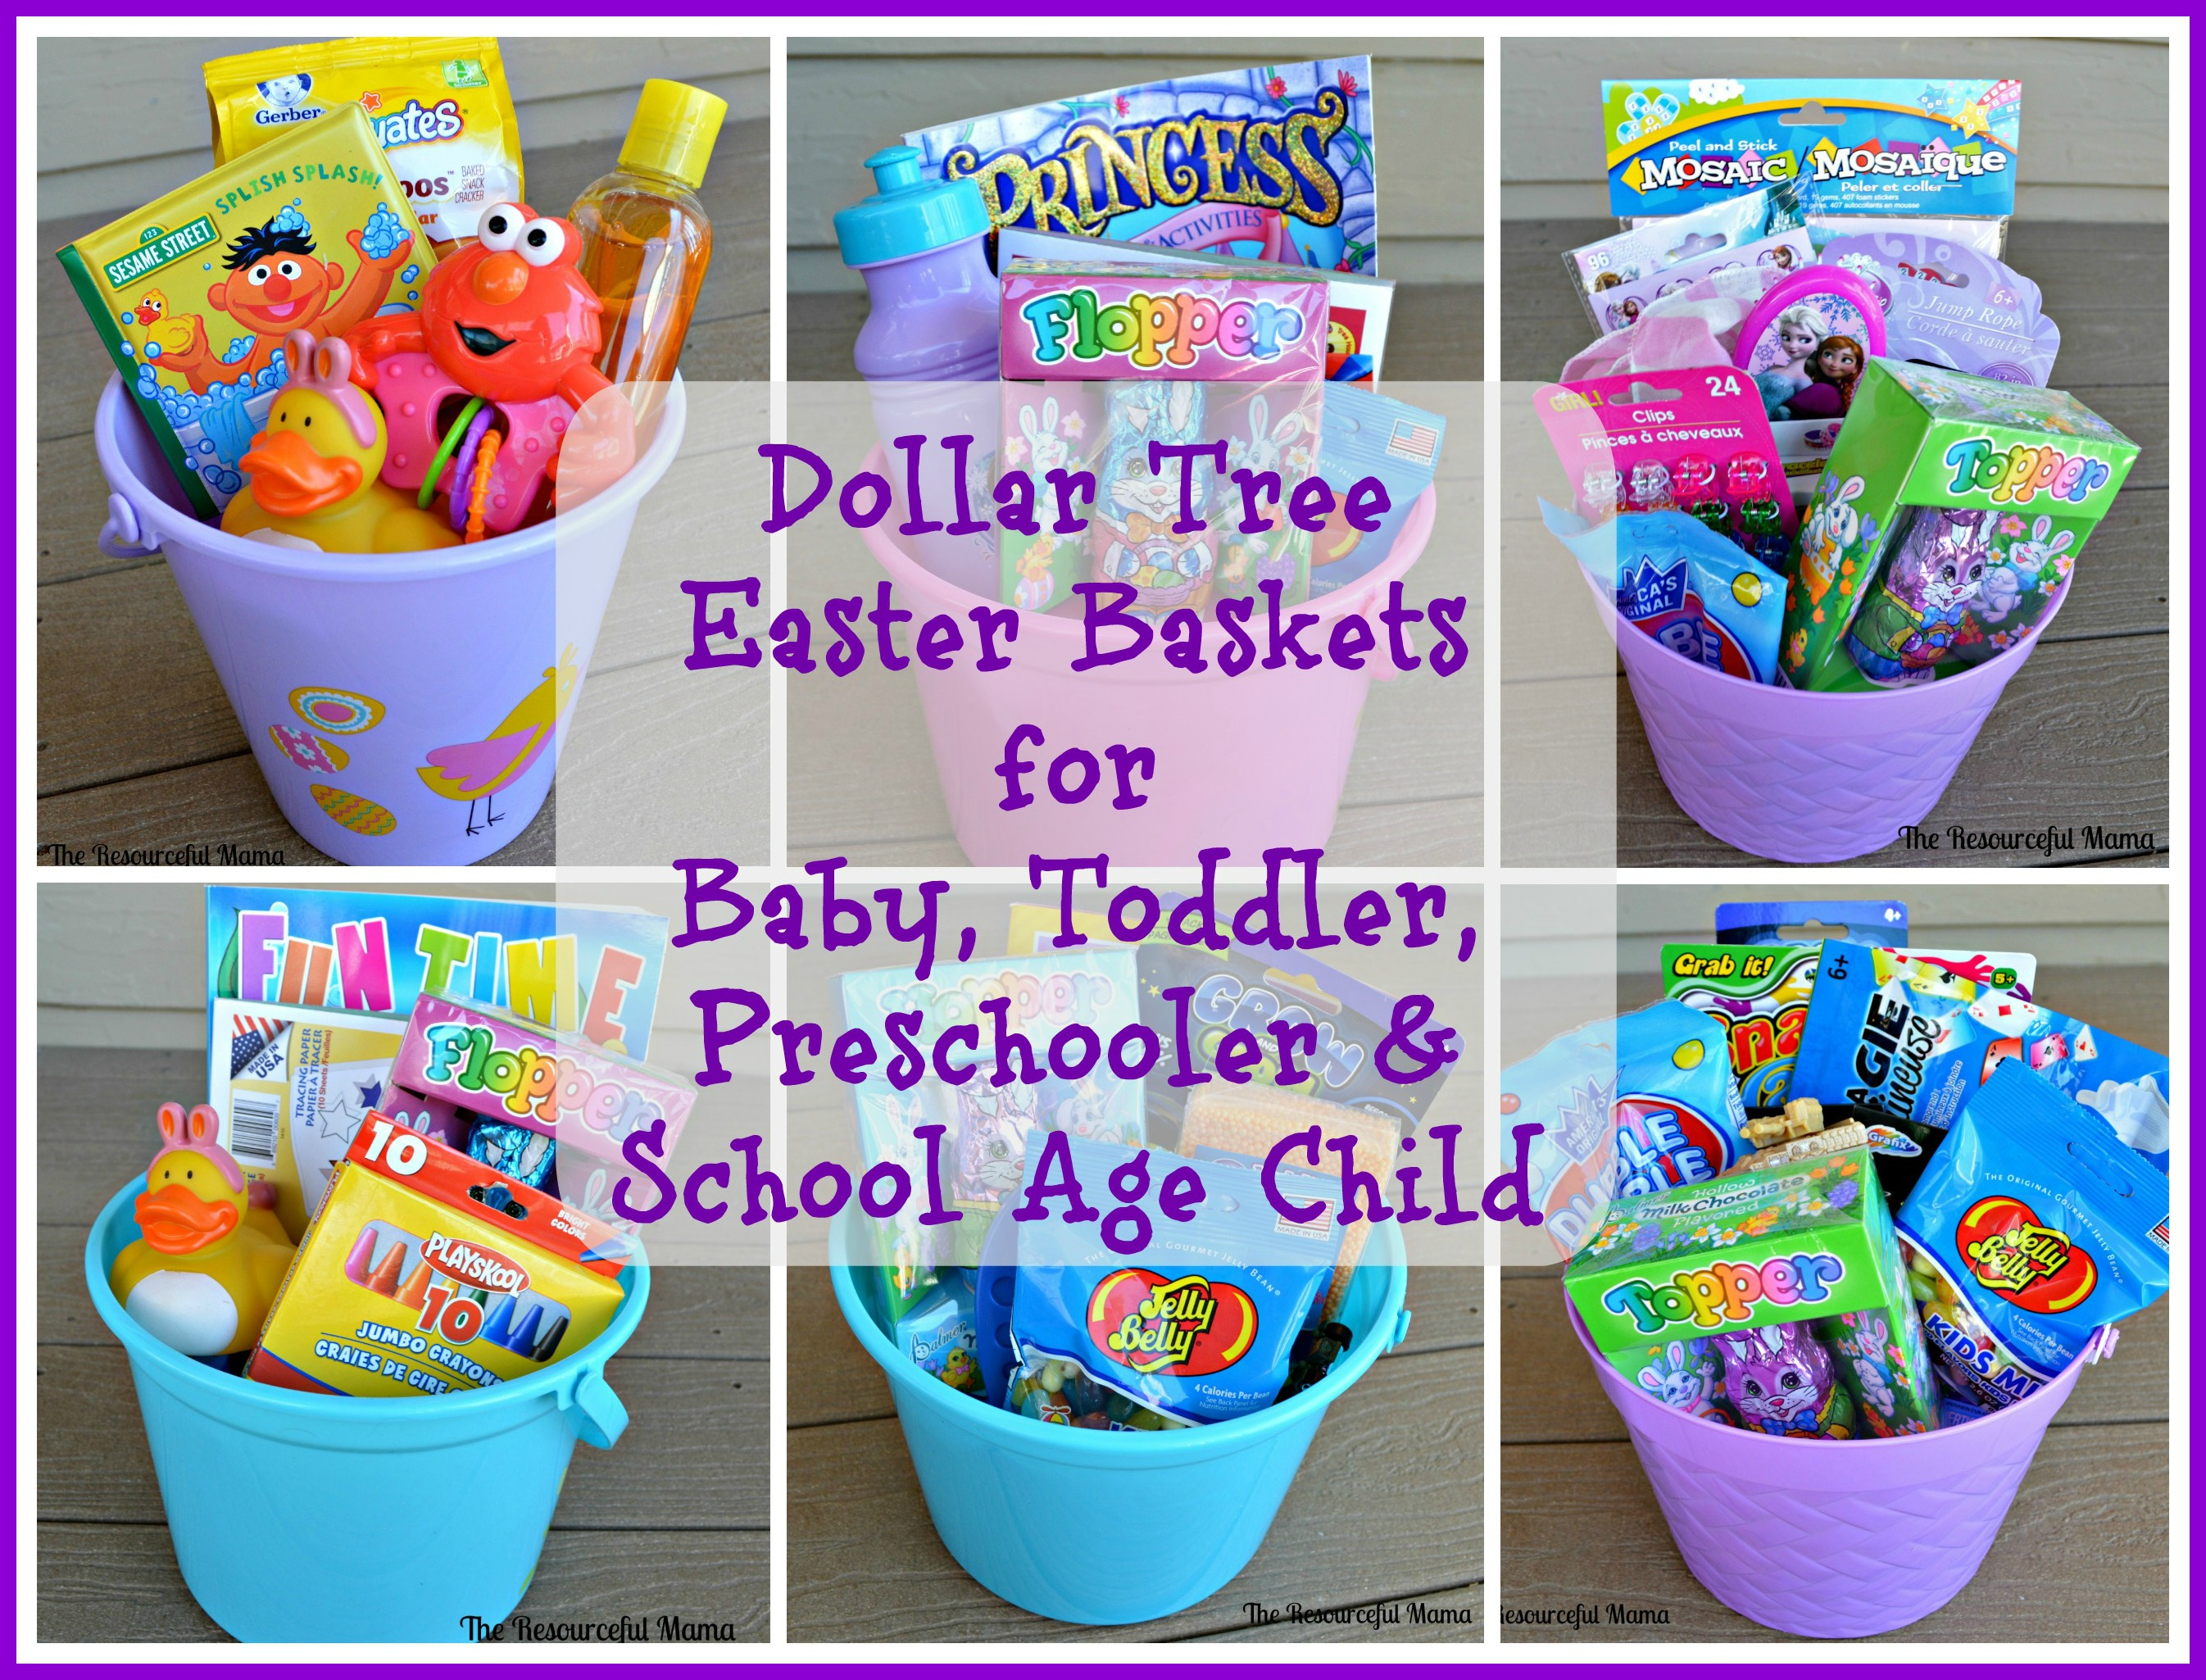 Dollar Tree Easter Basket For Baby, Toddler, Preschooler, School Age Child